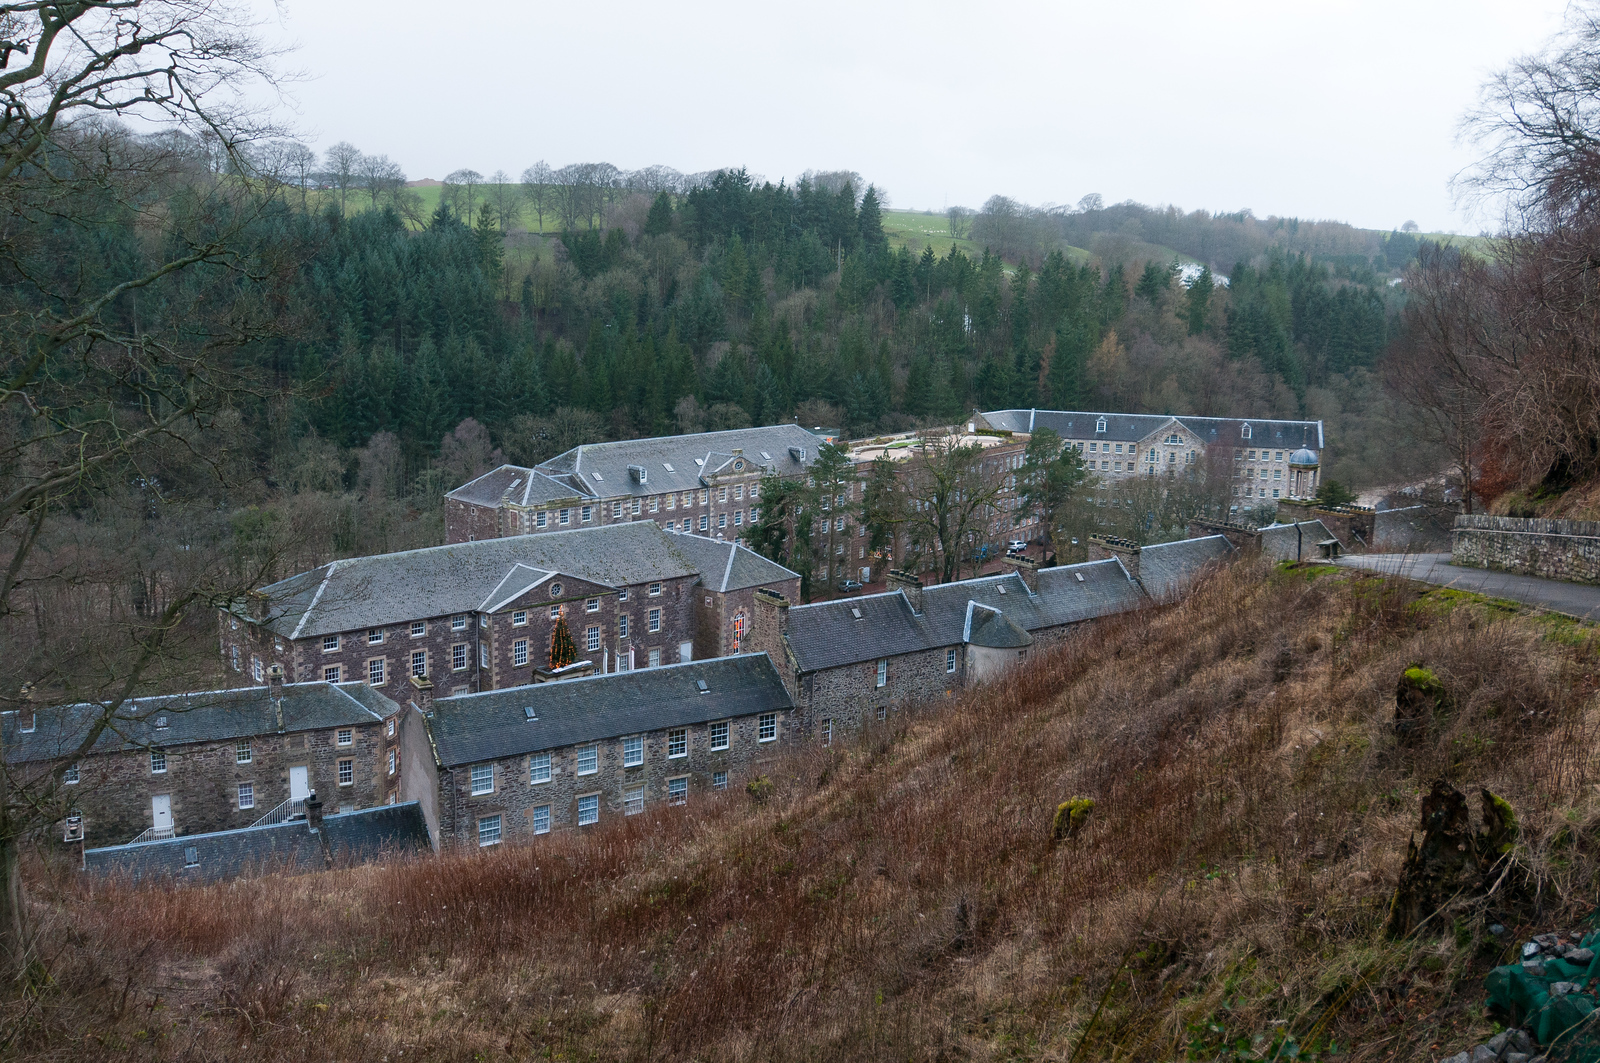 New Lanark UNESCO World Heritage Site, Scotland